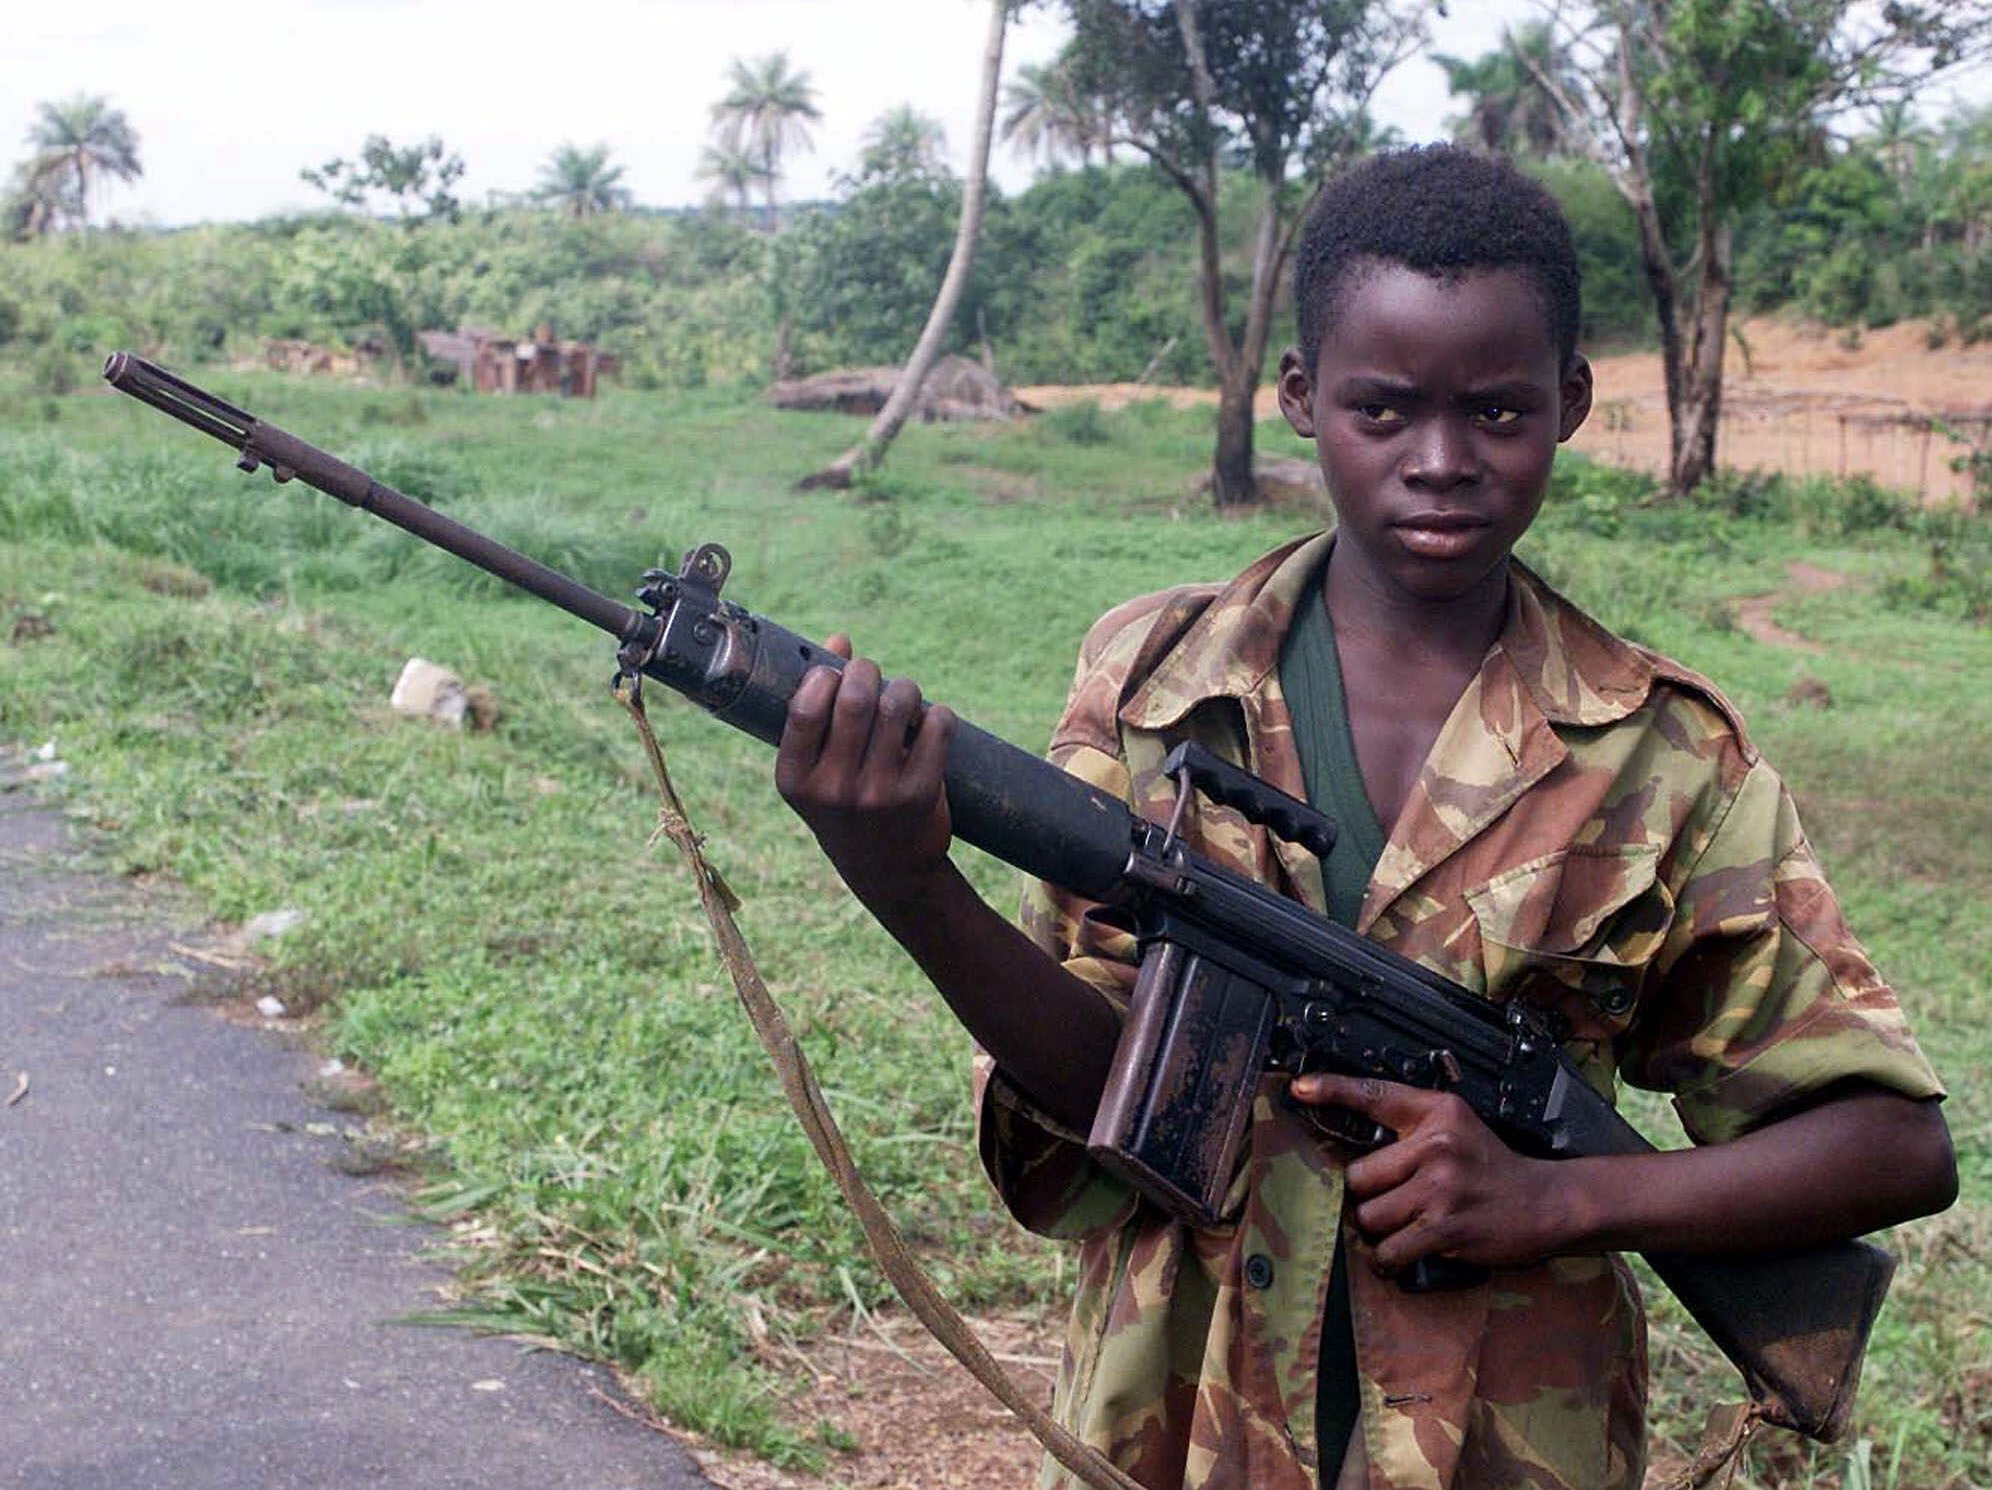 PA 2897855 UK Company Hired Former Child Soldiers To Fight As Mercenaries In Iraq